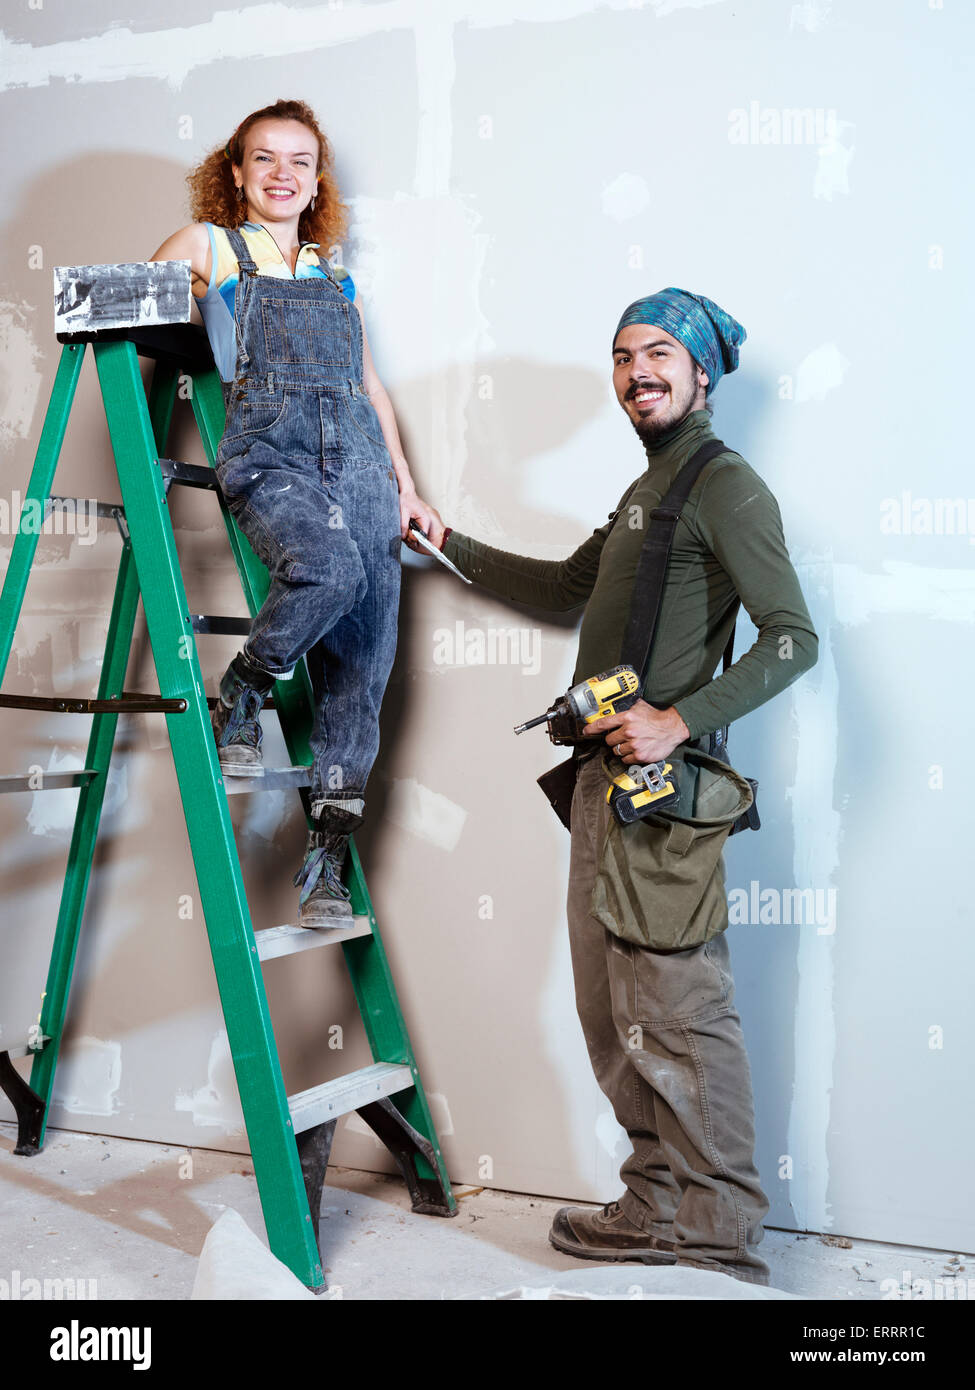 Portrait of a smiling young couple renovating, patching up drywall - Stock Image